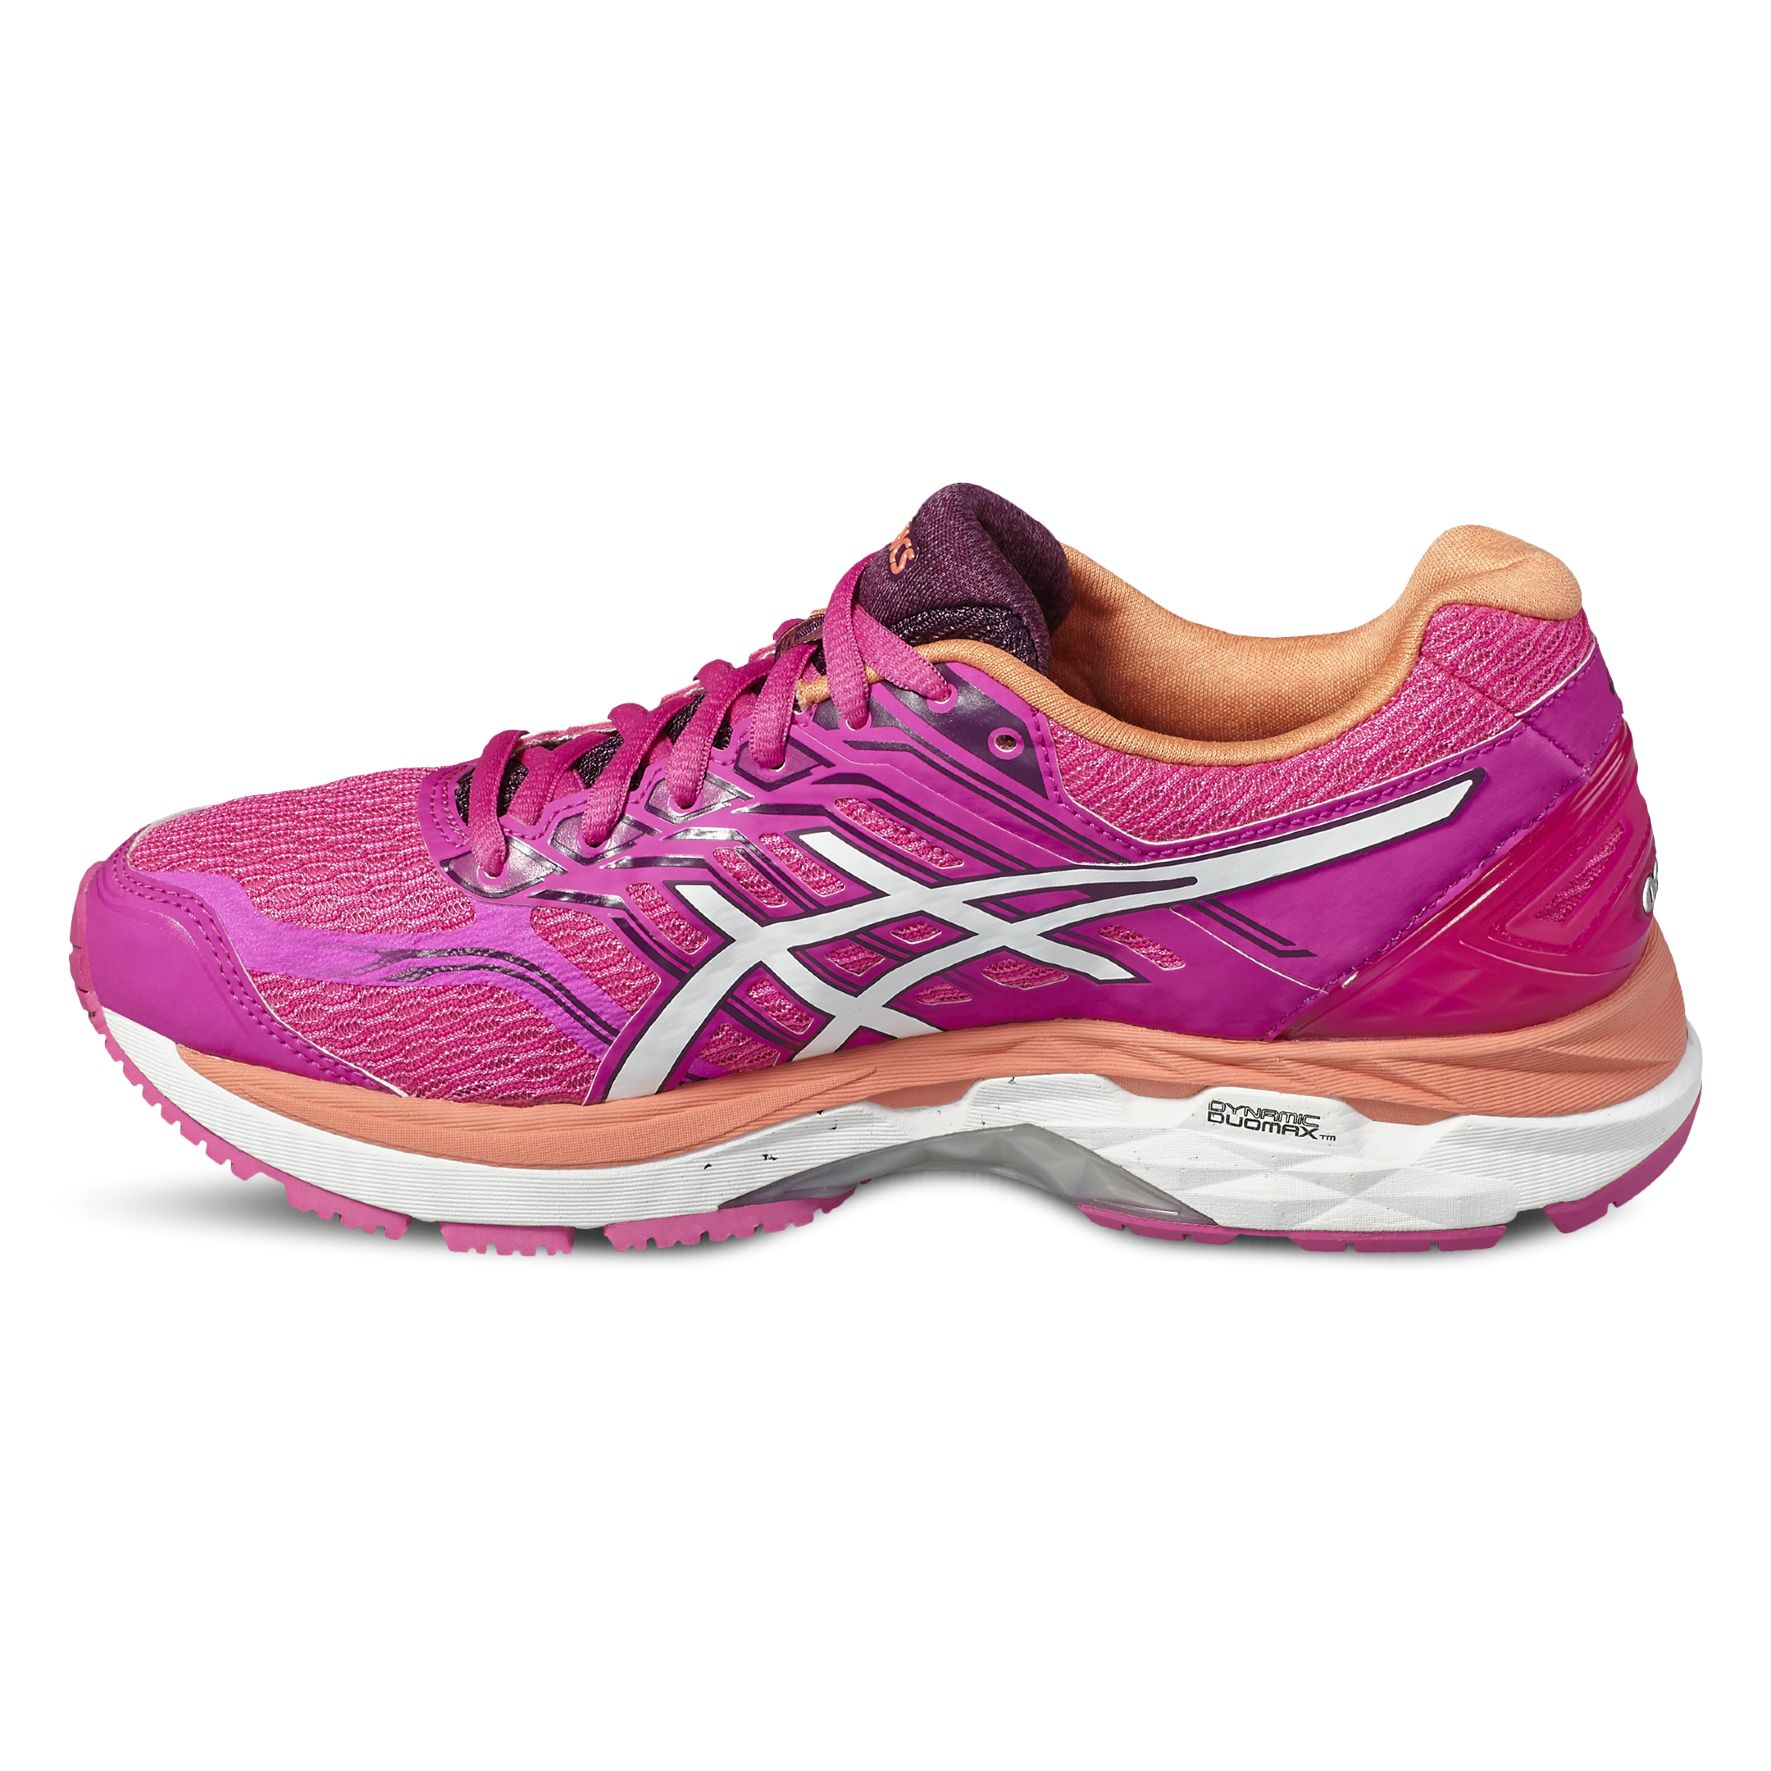 What To Wear With Pink Running Shoes